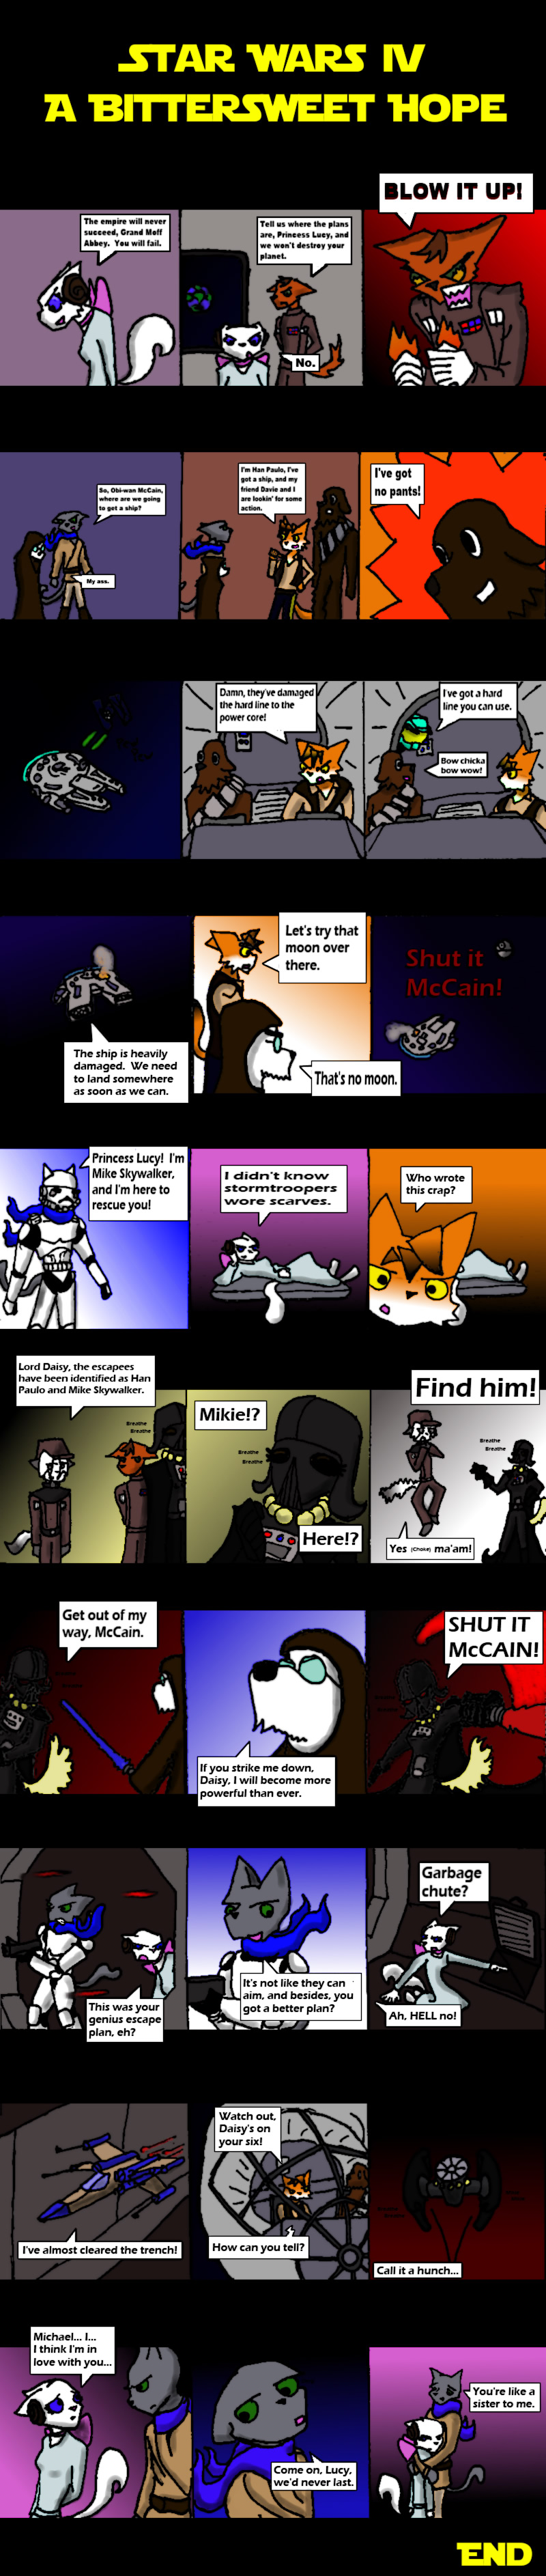 Candybooru image #3729, tagged with Abbey Augustus Comedy_(Artist) Daisy David Guest_Comic Lucy McCain Mike Paulo parody